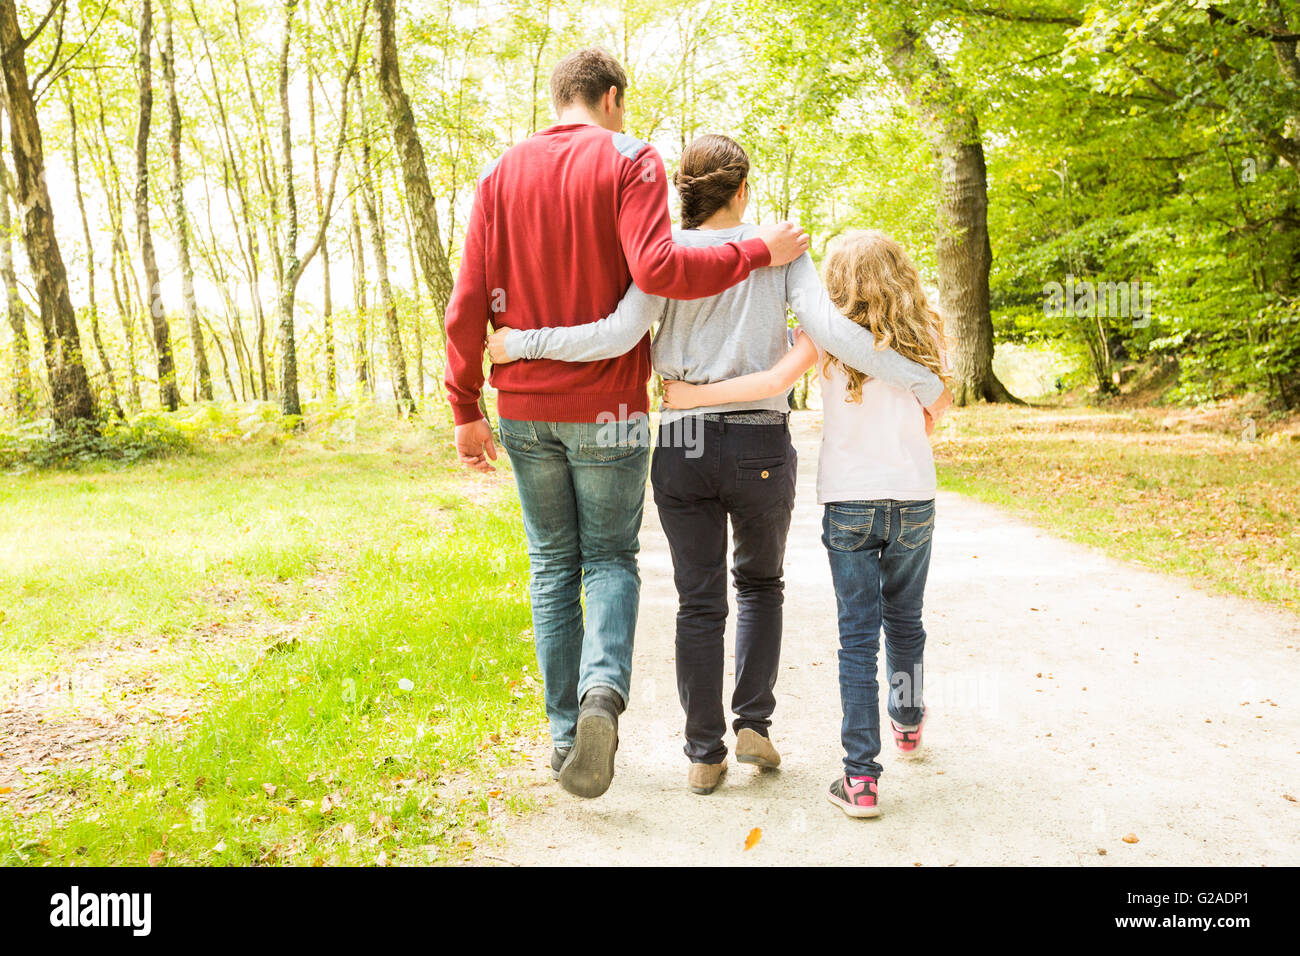 Daughter (8-9) with parents walking in park, rear view - Stock Image